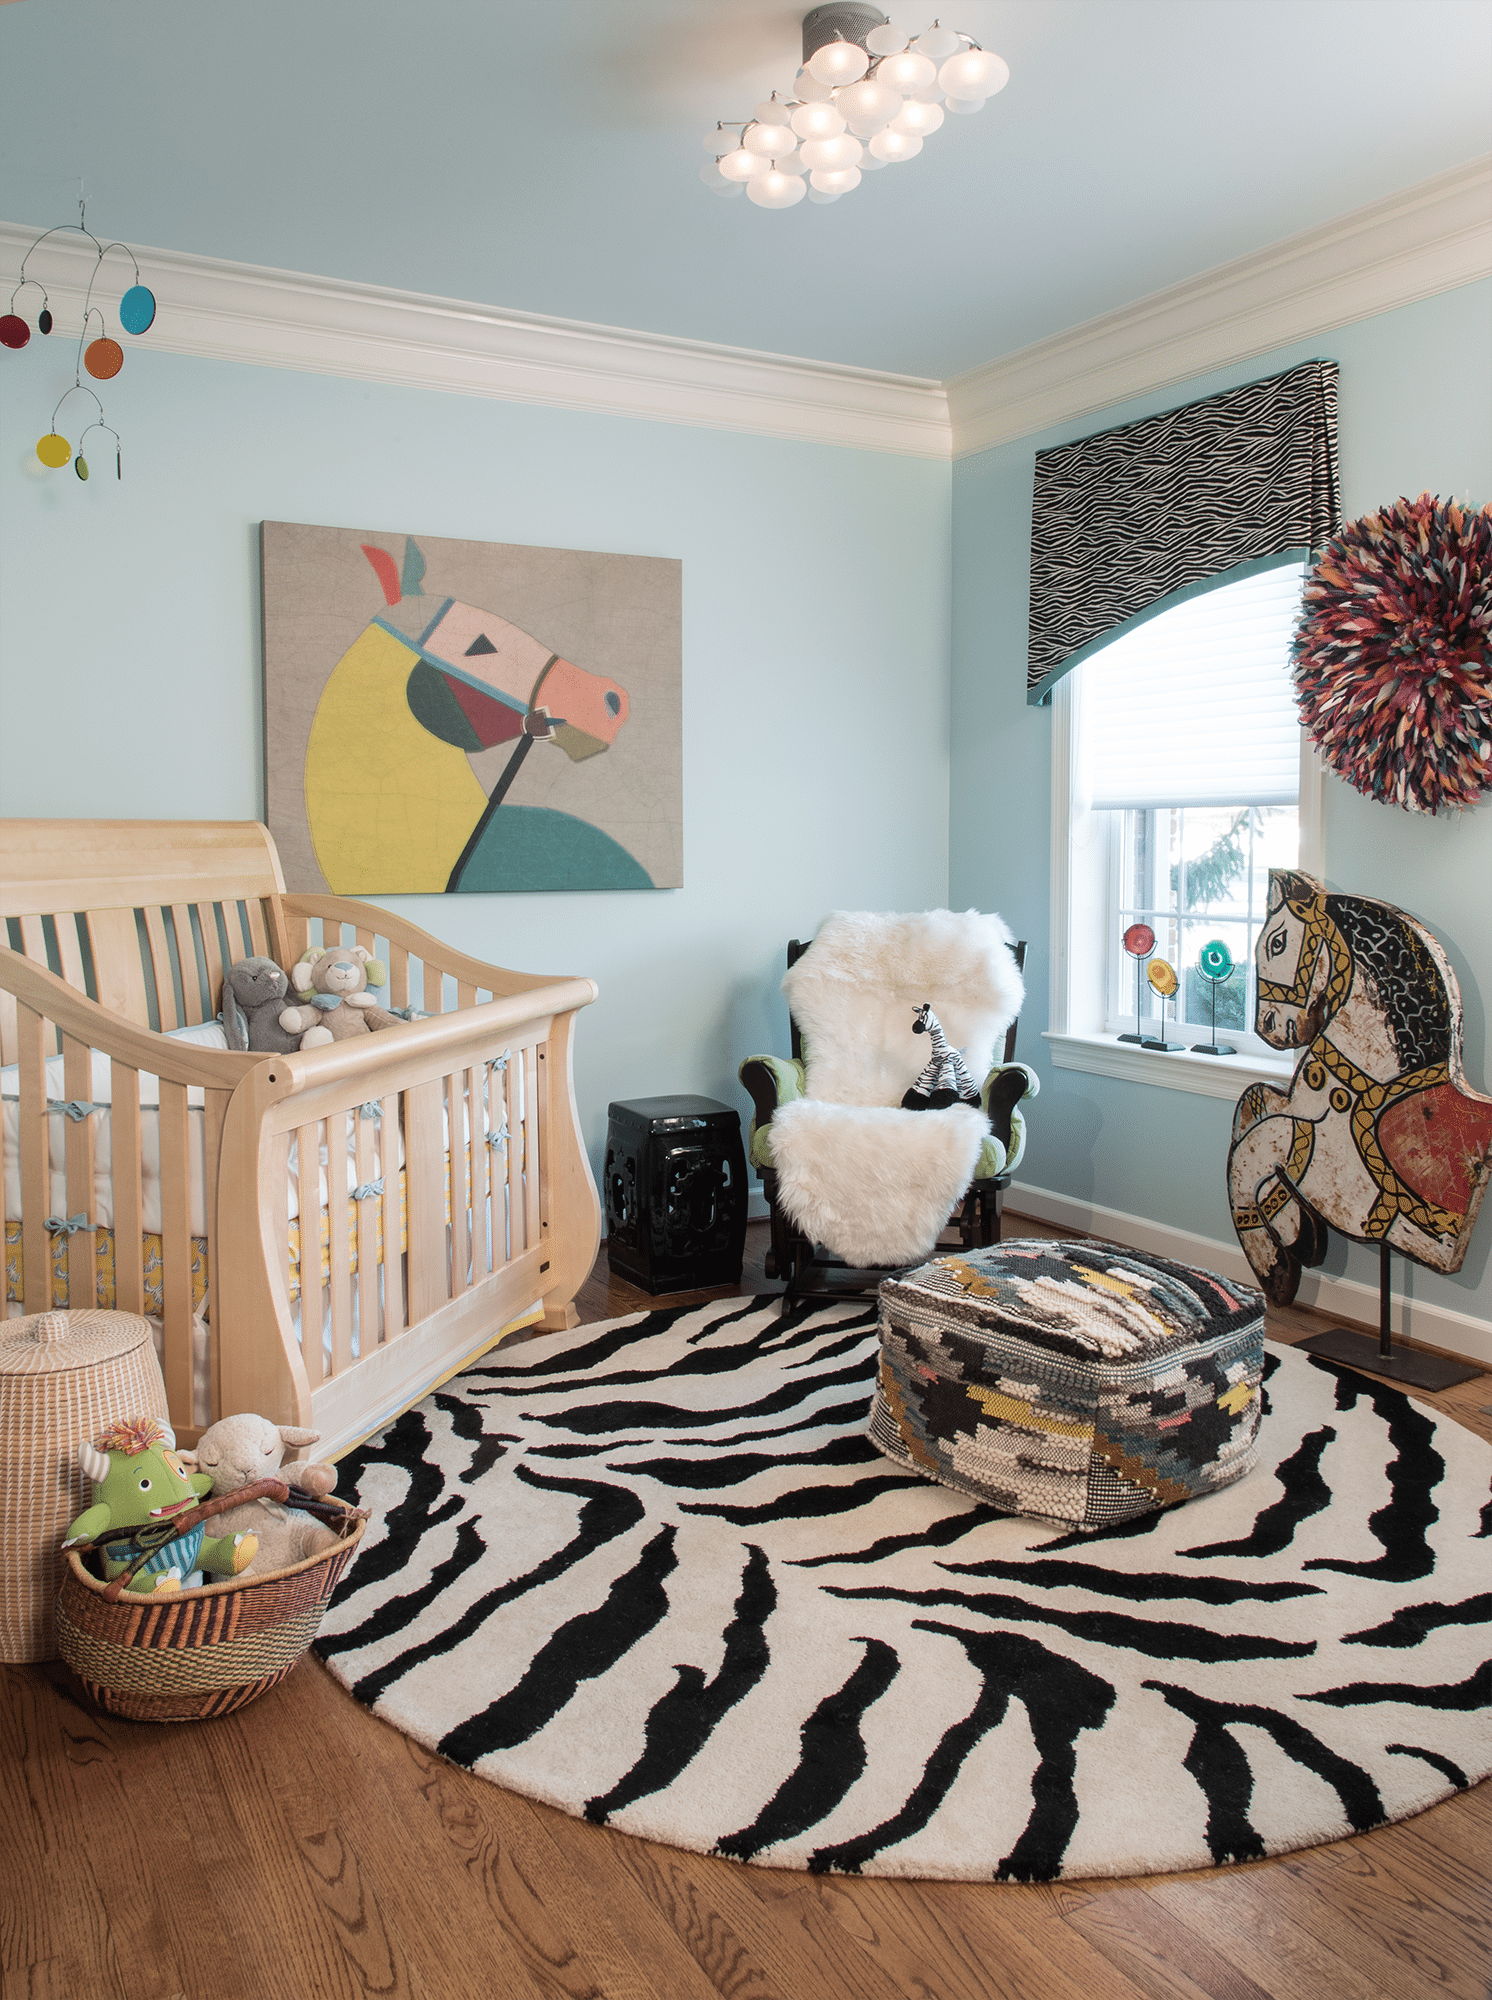 Brown wooden crib and mattress inside well lit room